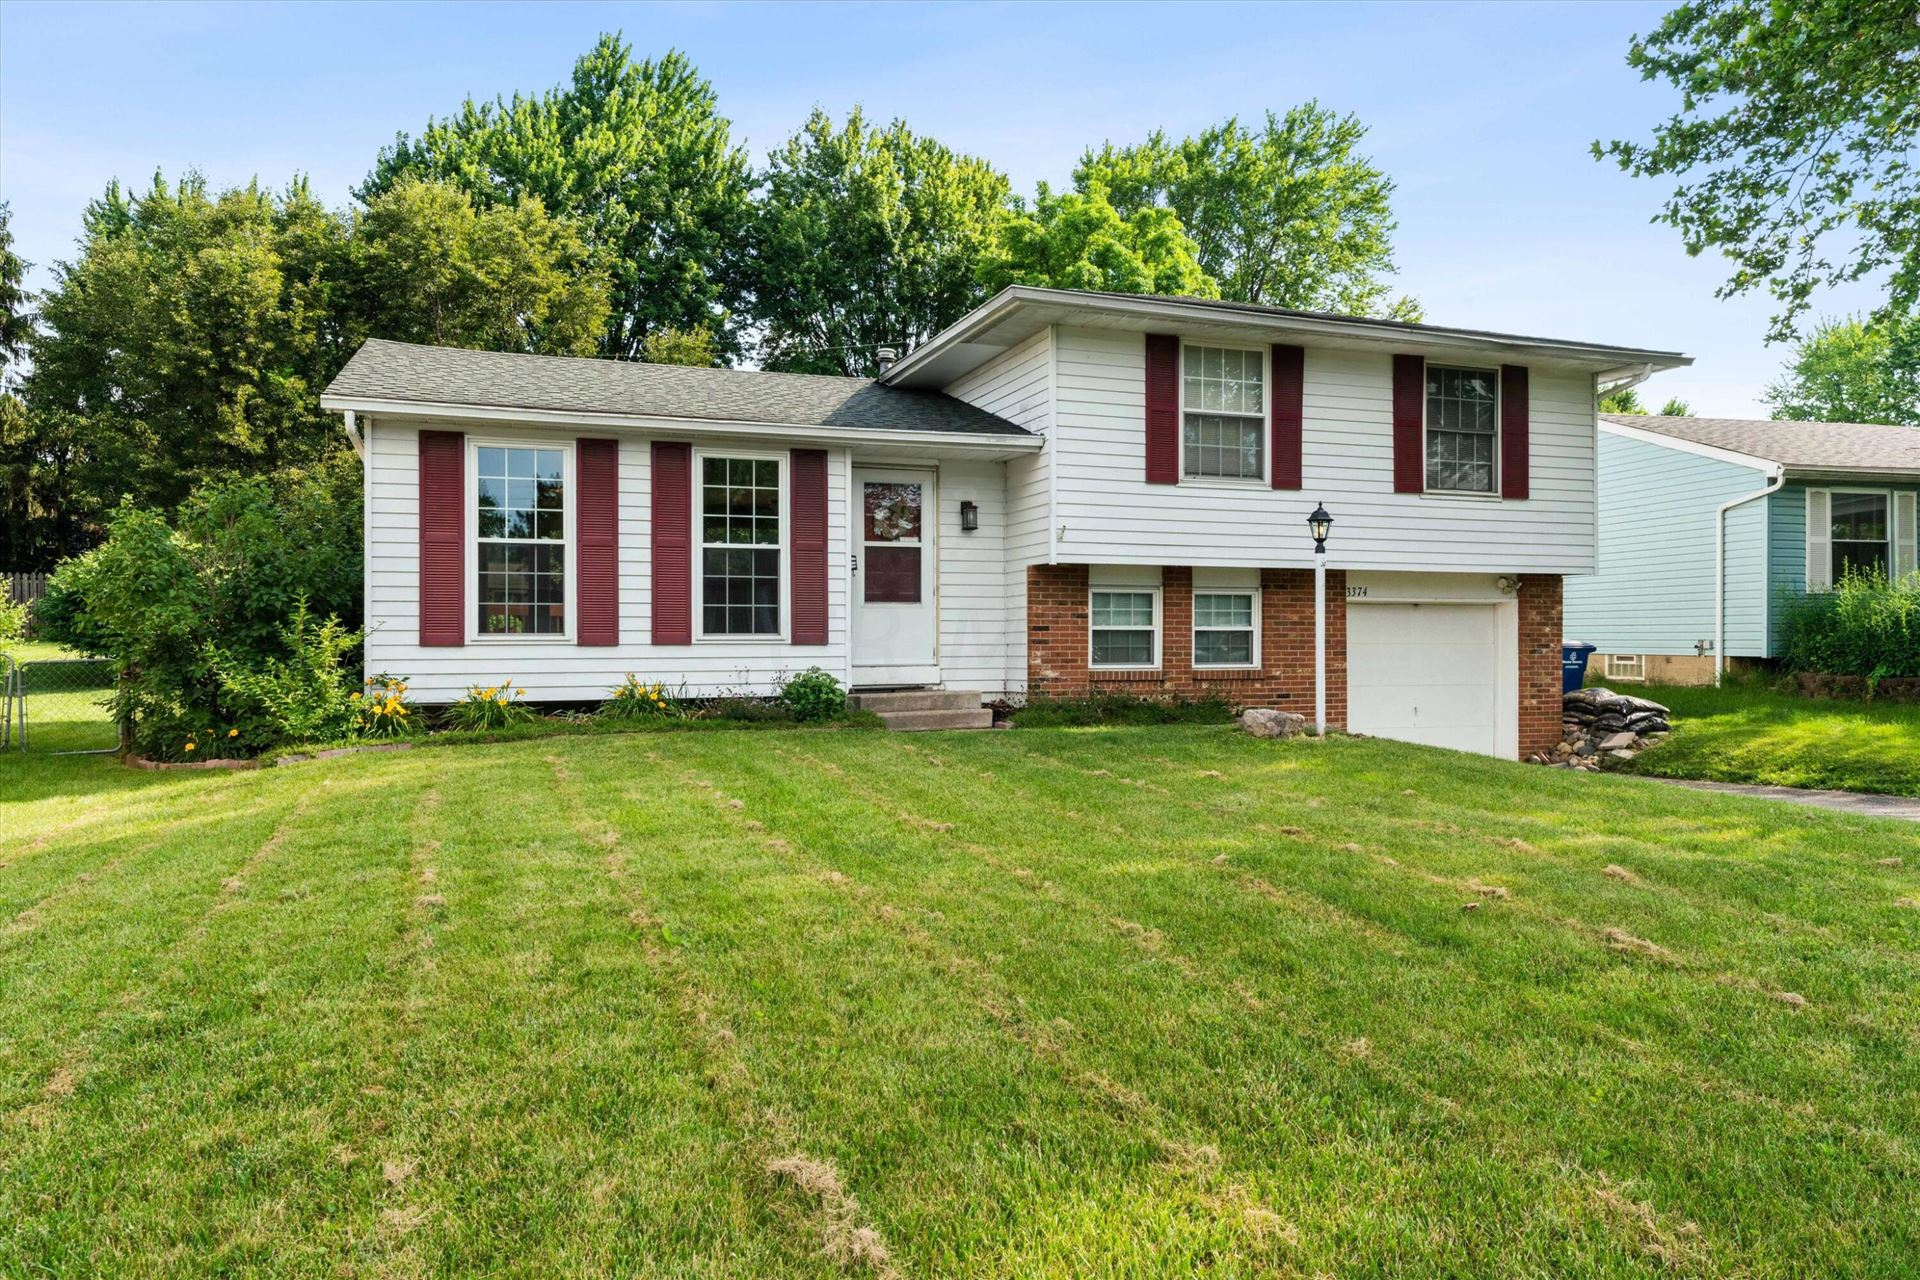 Photo of 3374 Vickers Drive, Westerville, OH 43081 (MLS # 221021728)